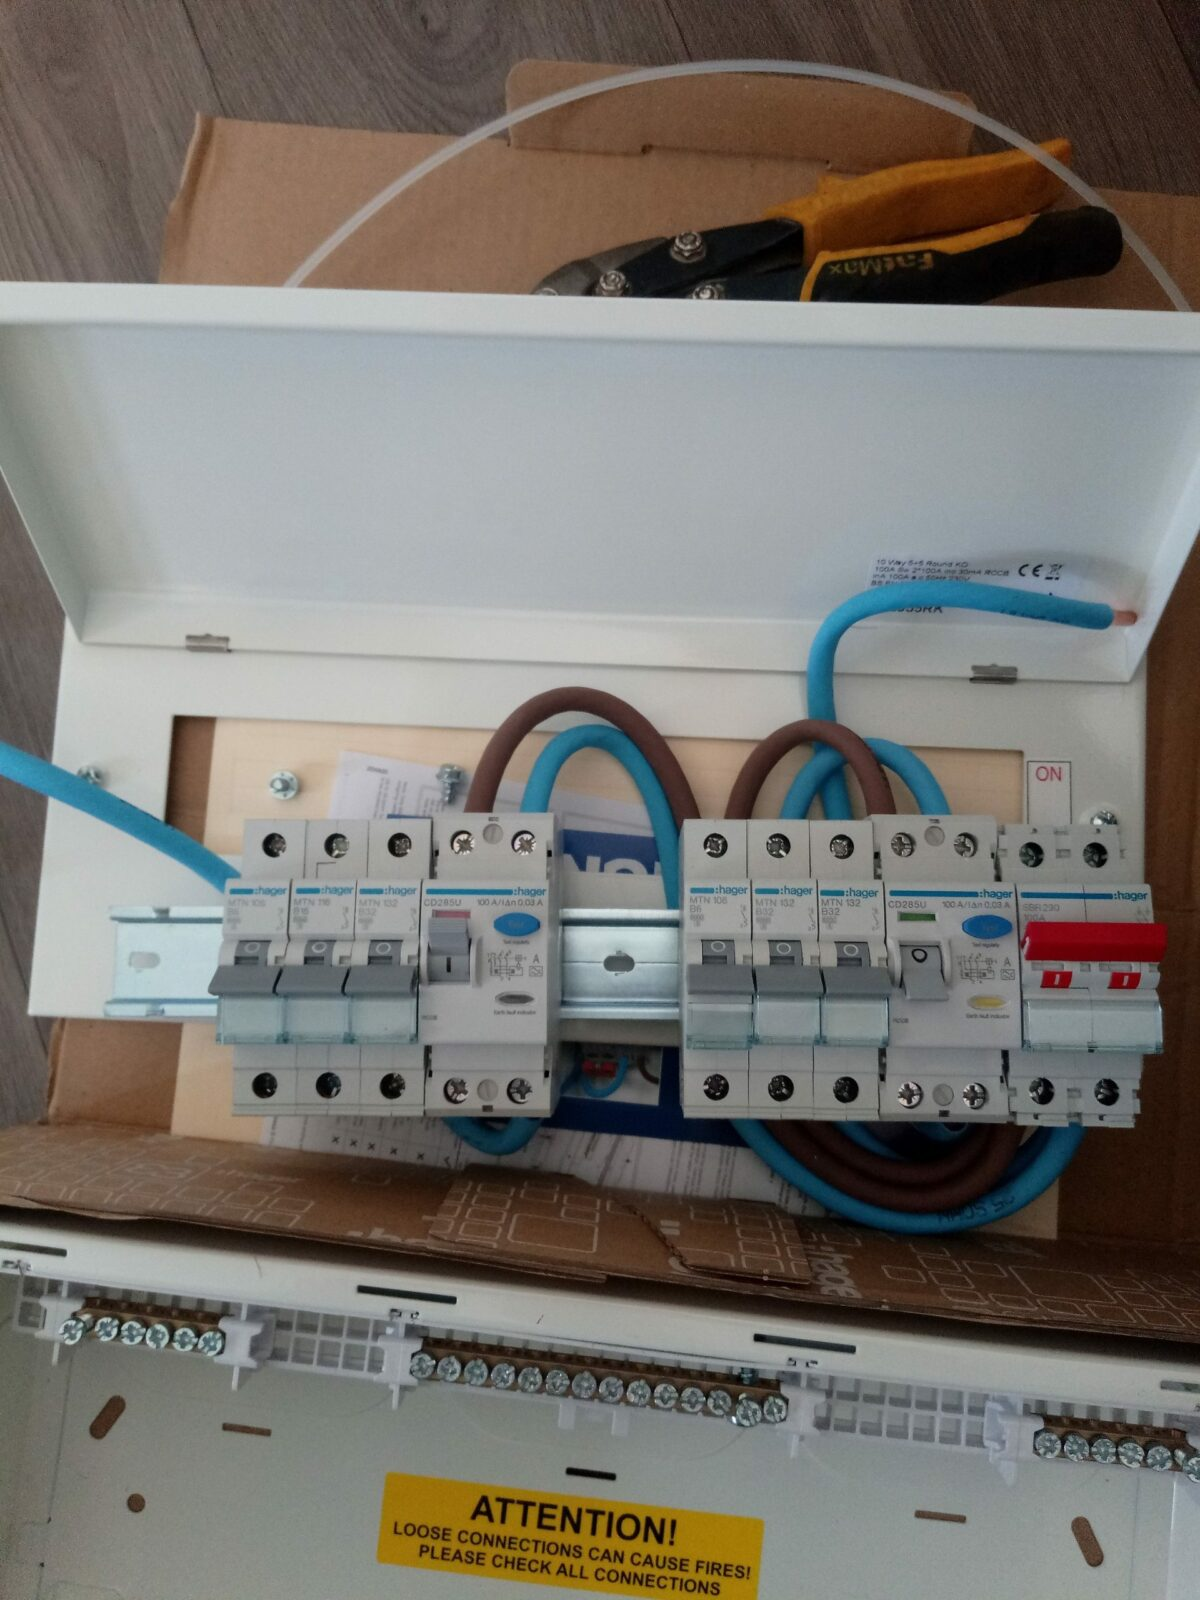 Monday morning CCU replacent in Maidstone 4